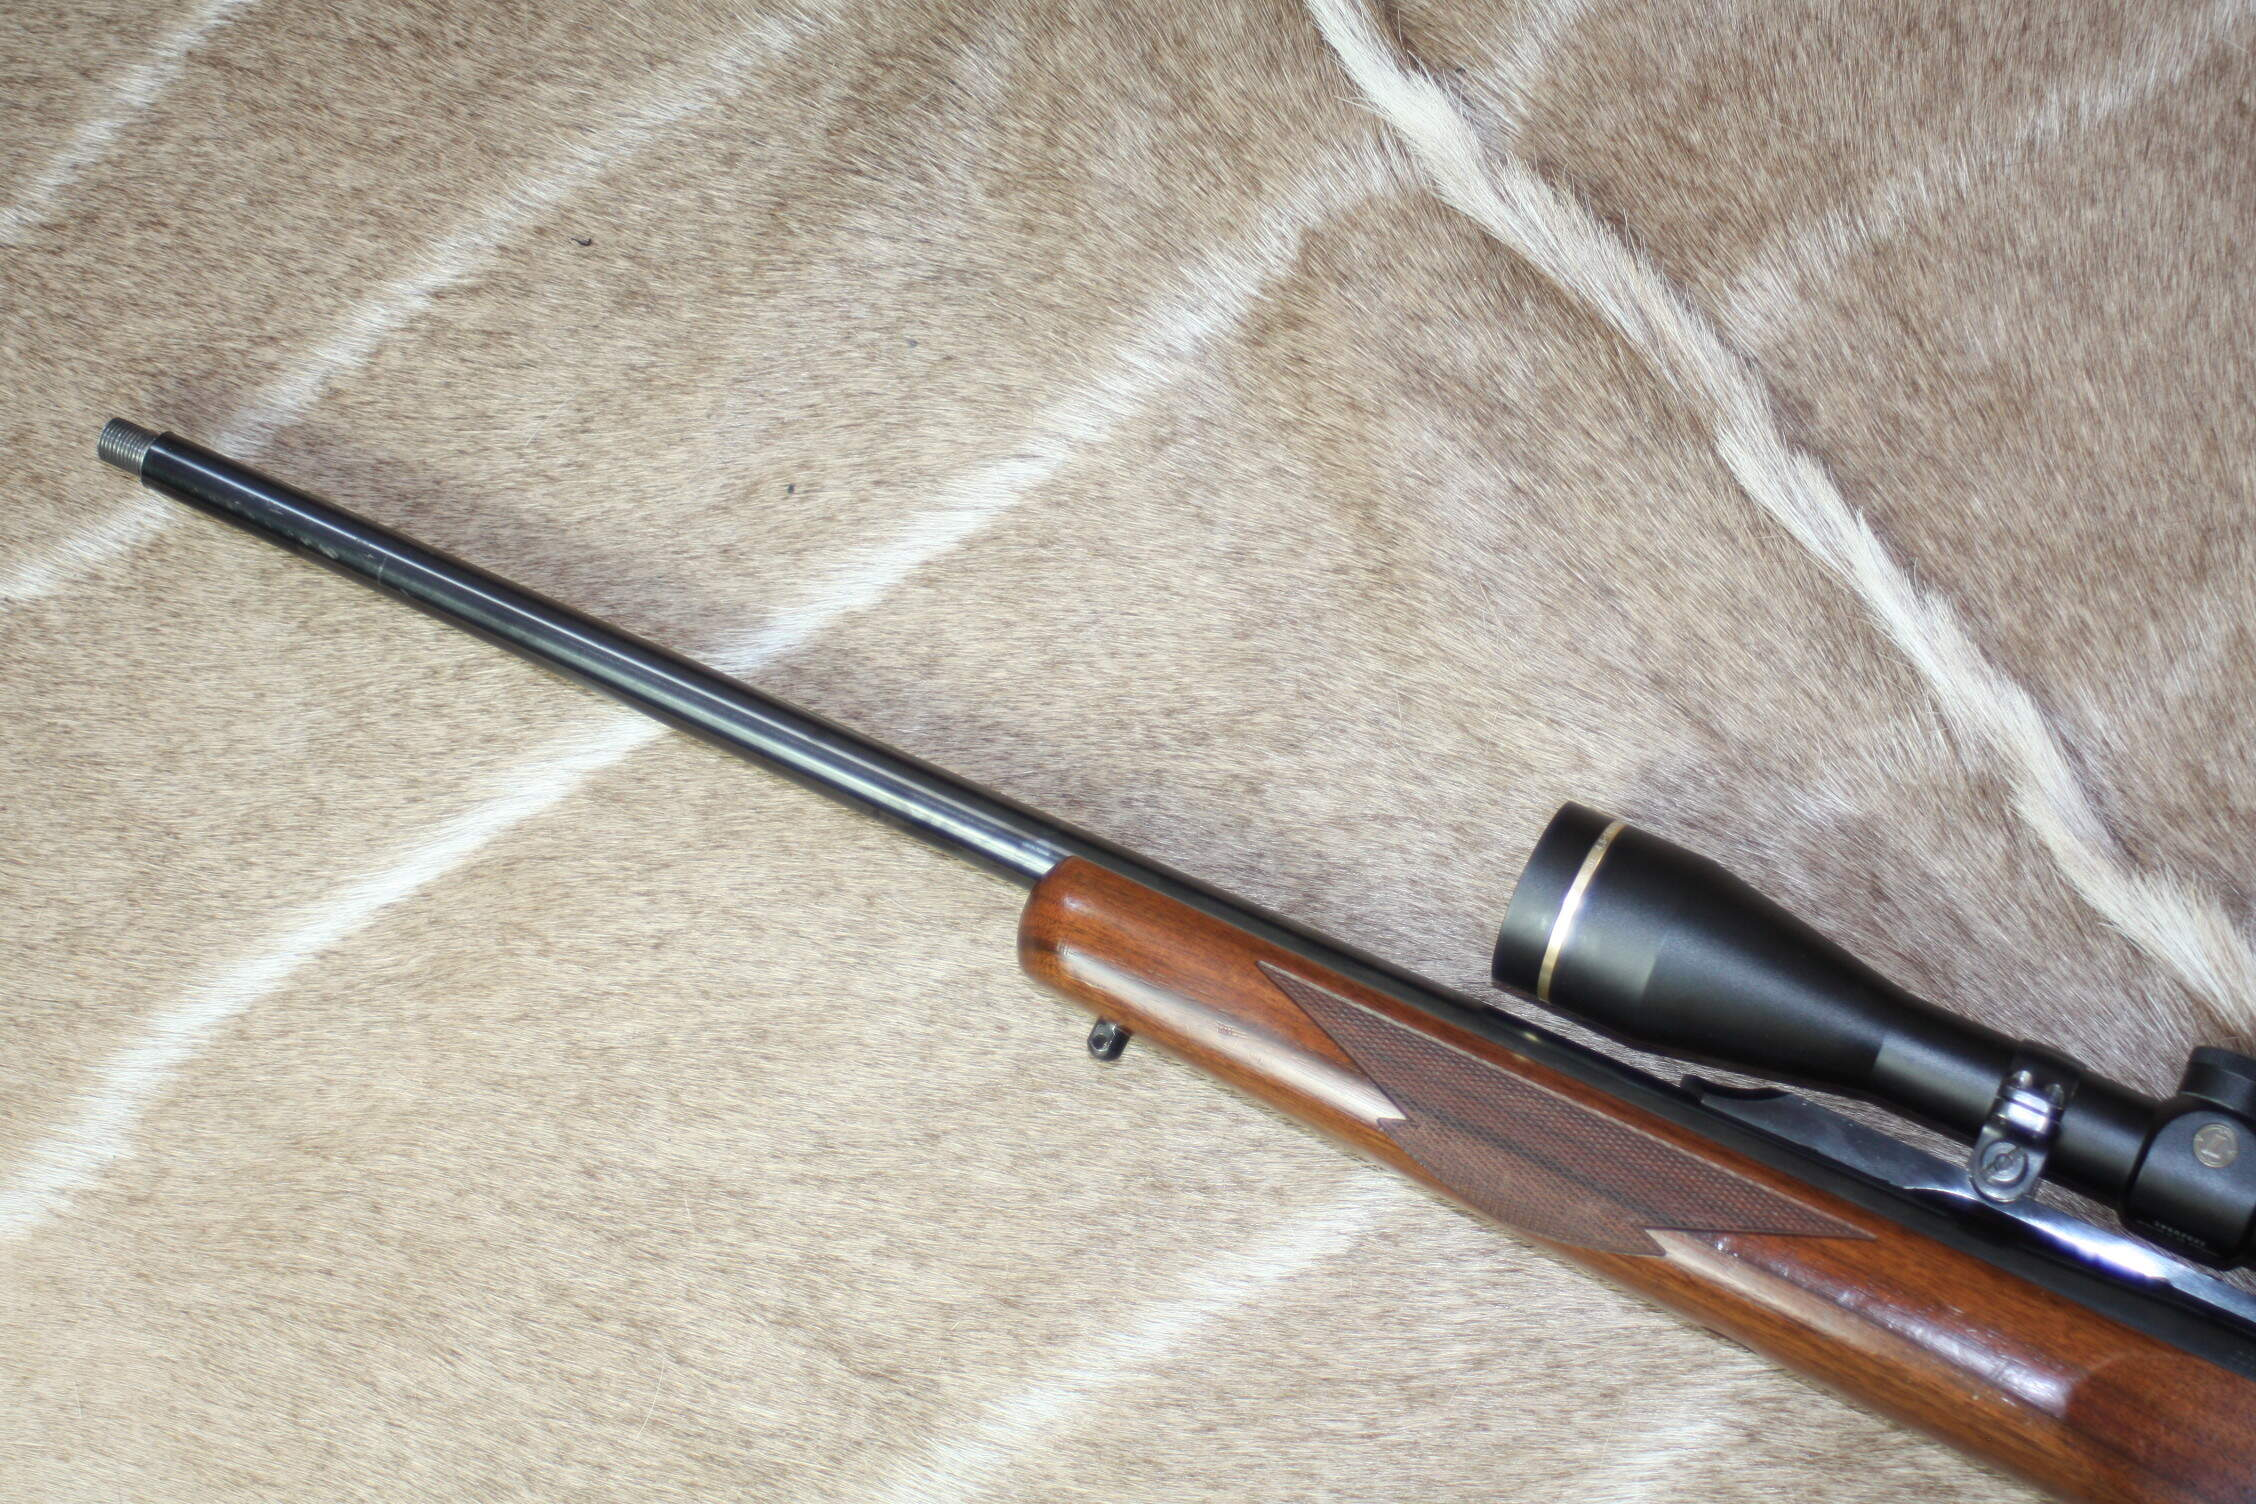 RUGER .223 REM 'No 1' FALLING-BLOCK SINGLE-SHOT SPORTING RIFLE